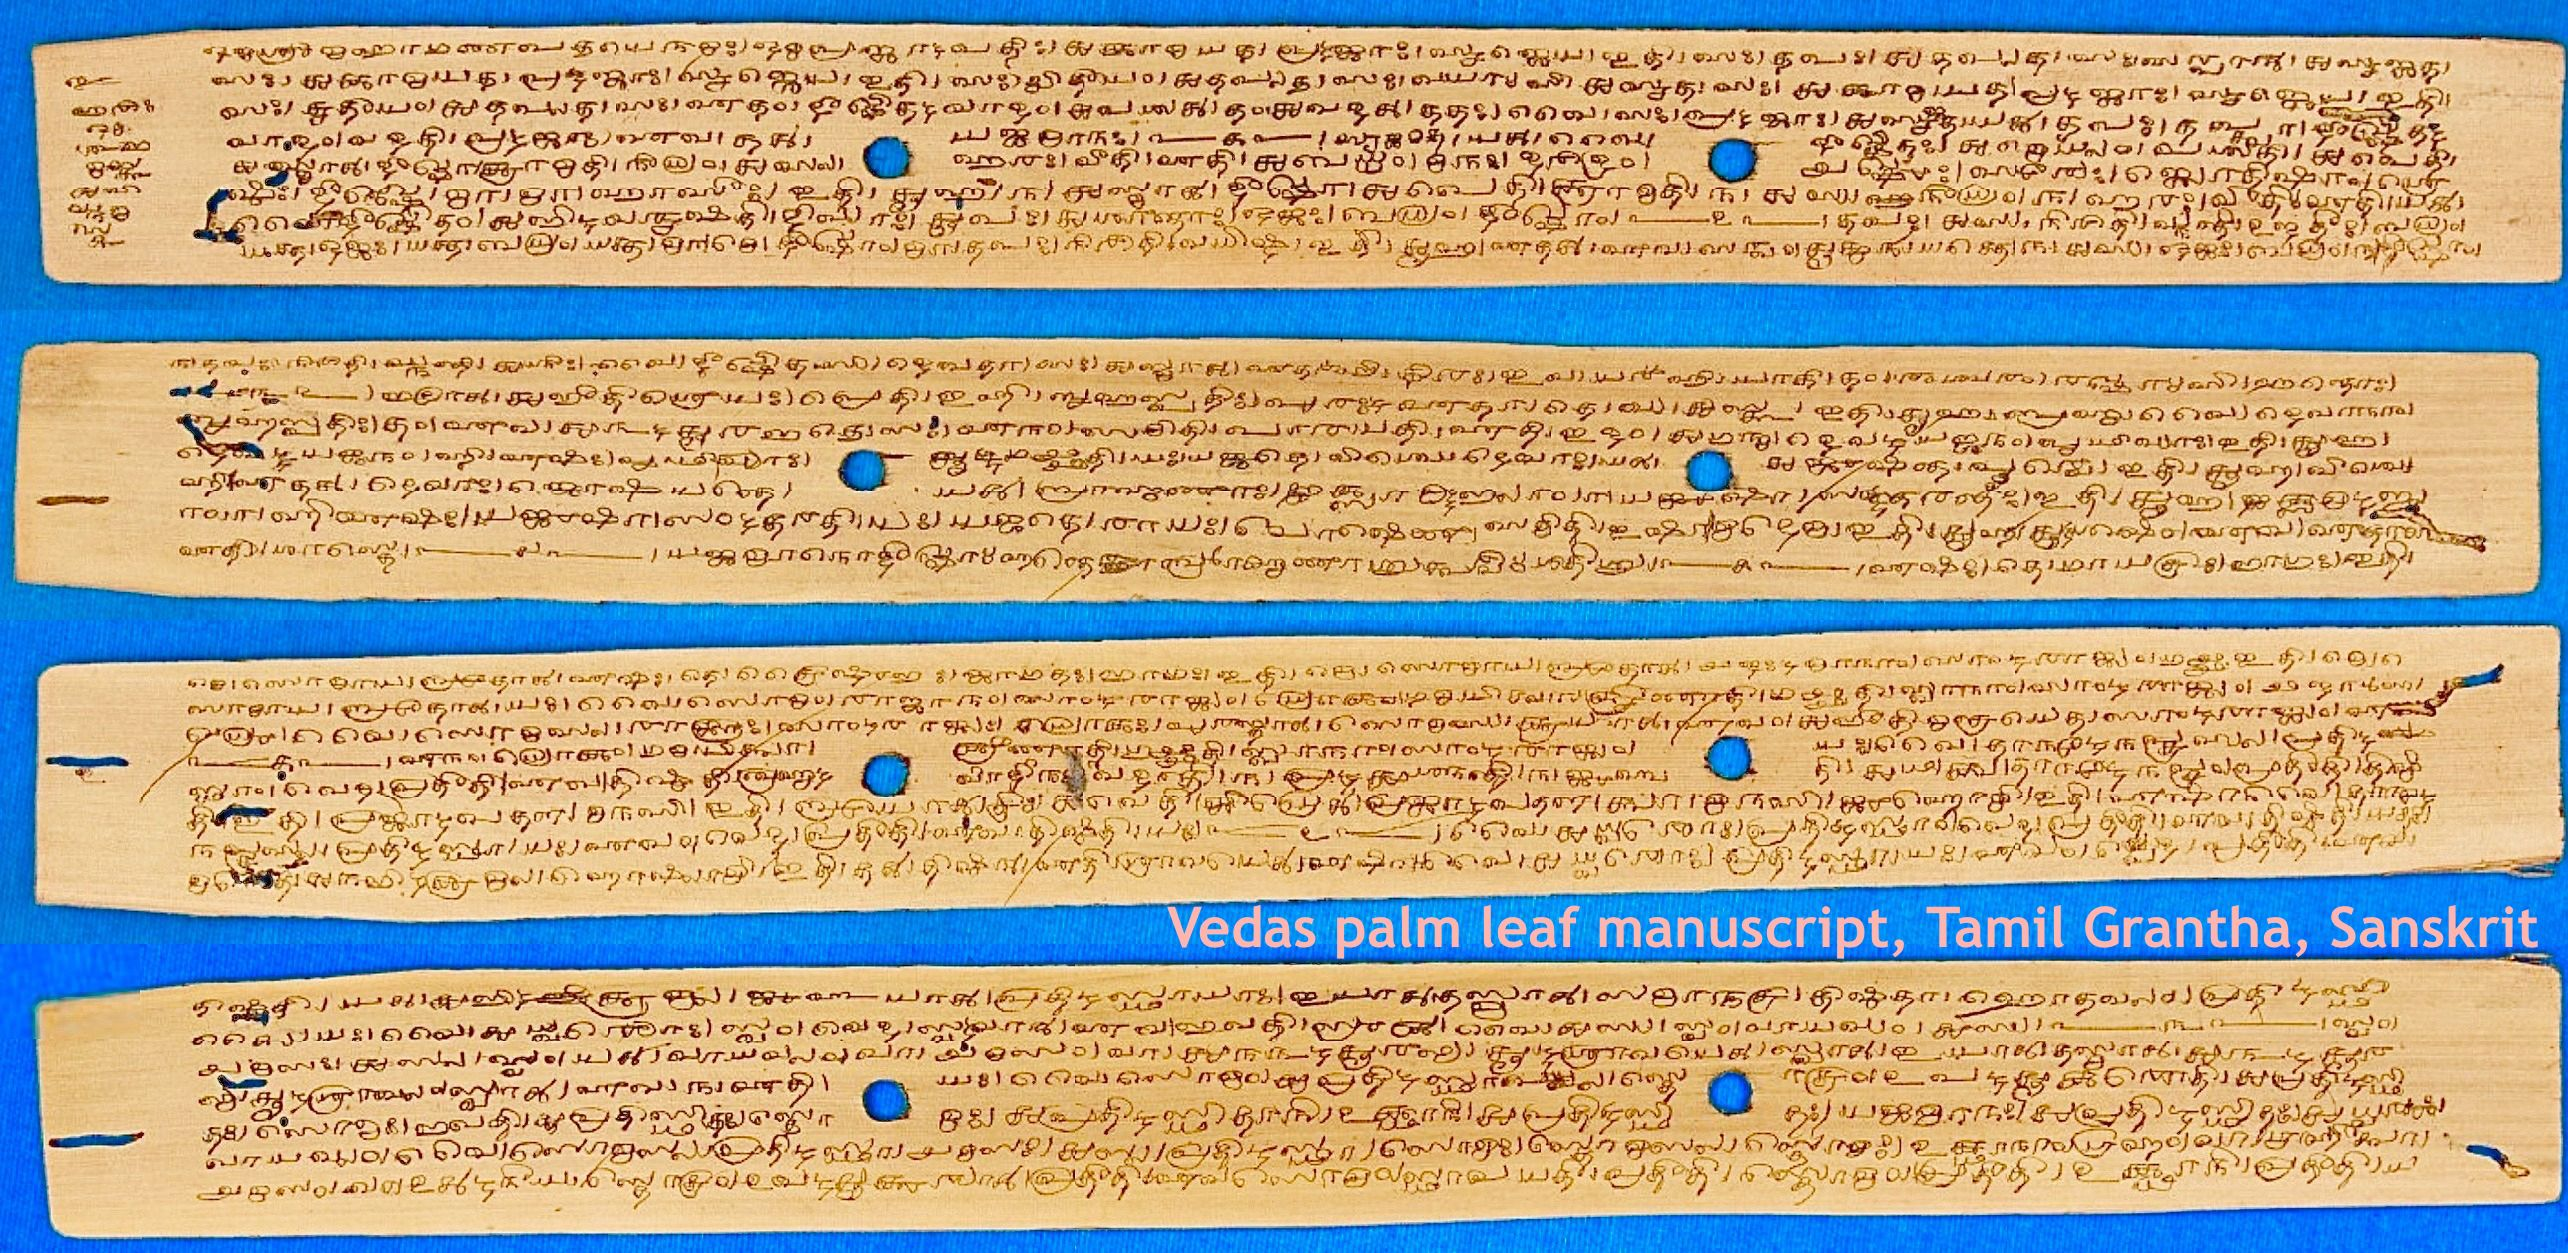 Sanskrit Of The Vedas Vs Modern Sanskrit: File:Vedas Palm Leaf Manuscript, Tamil Grantha Script